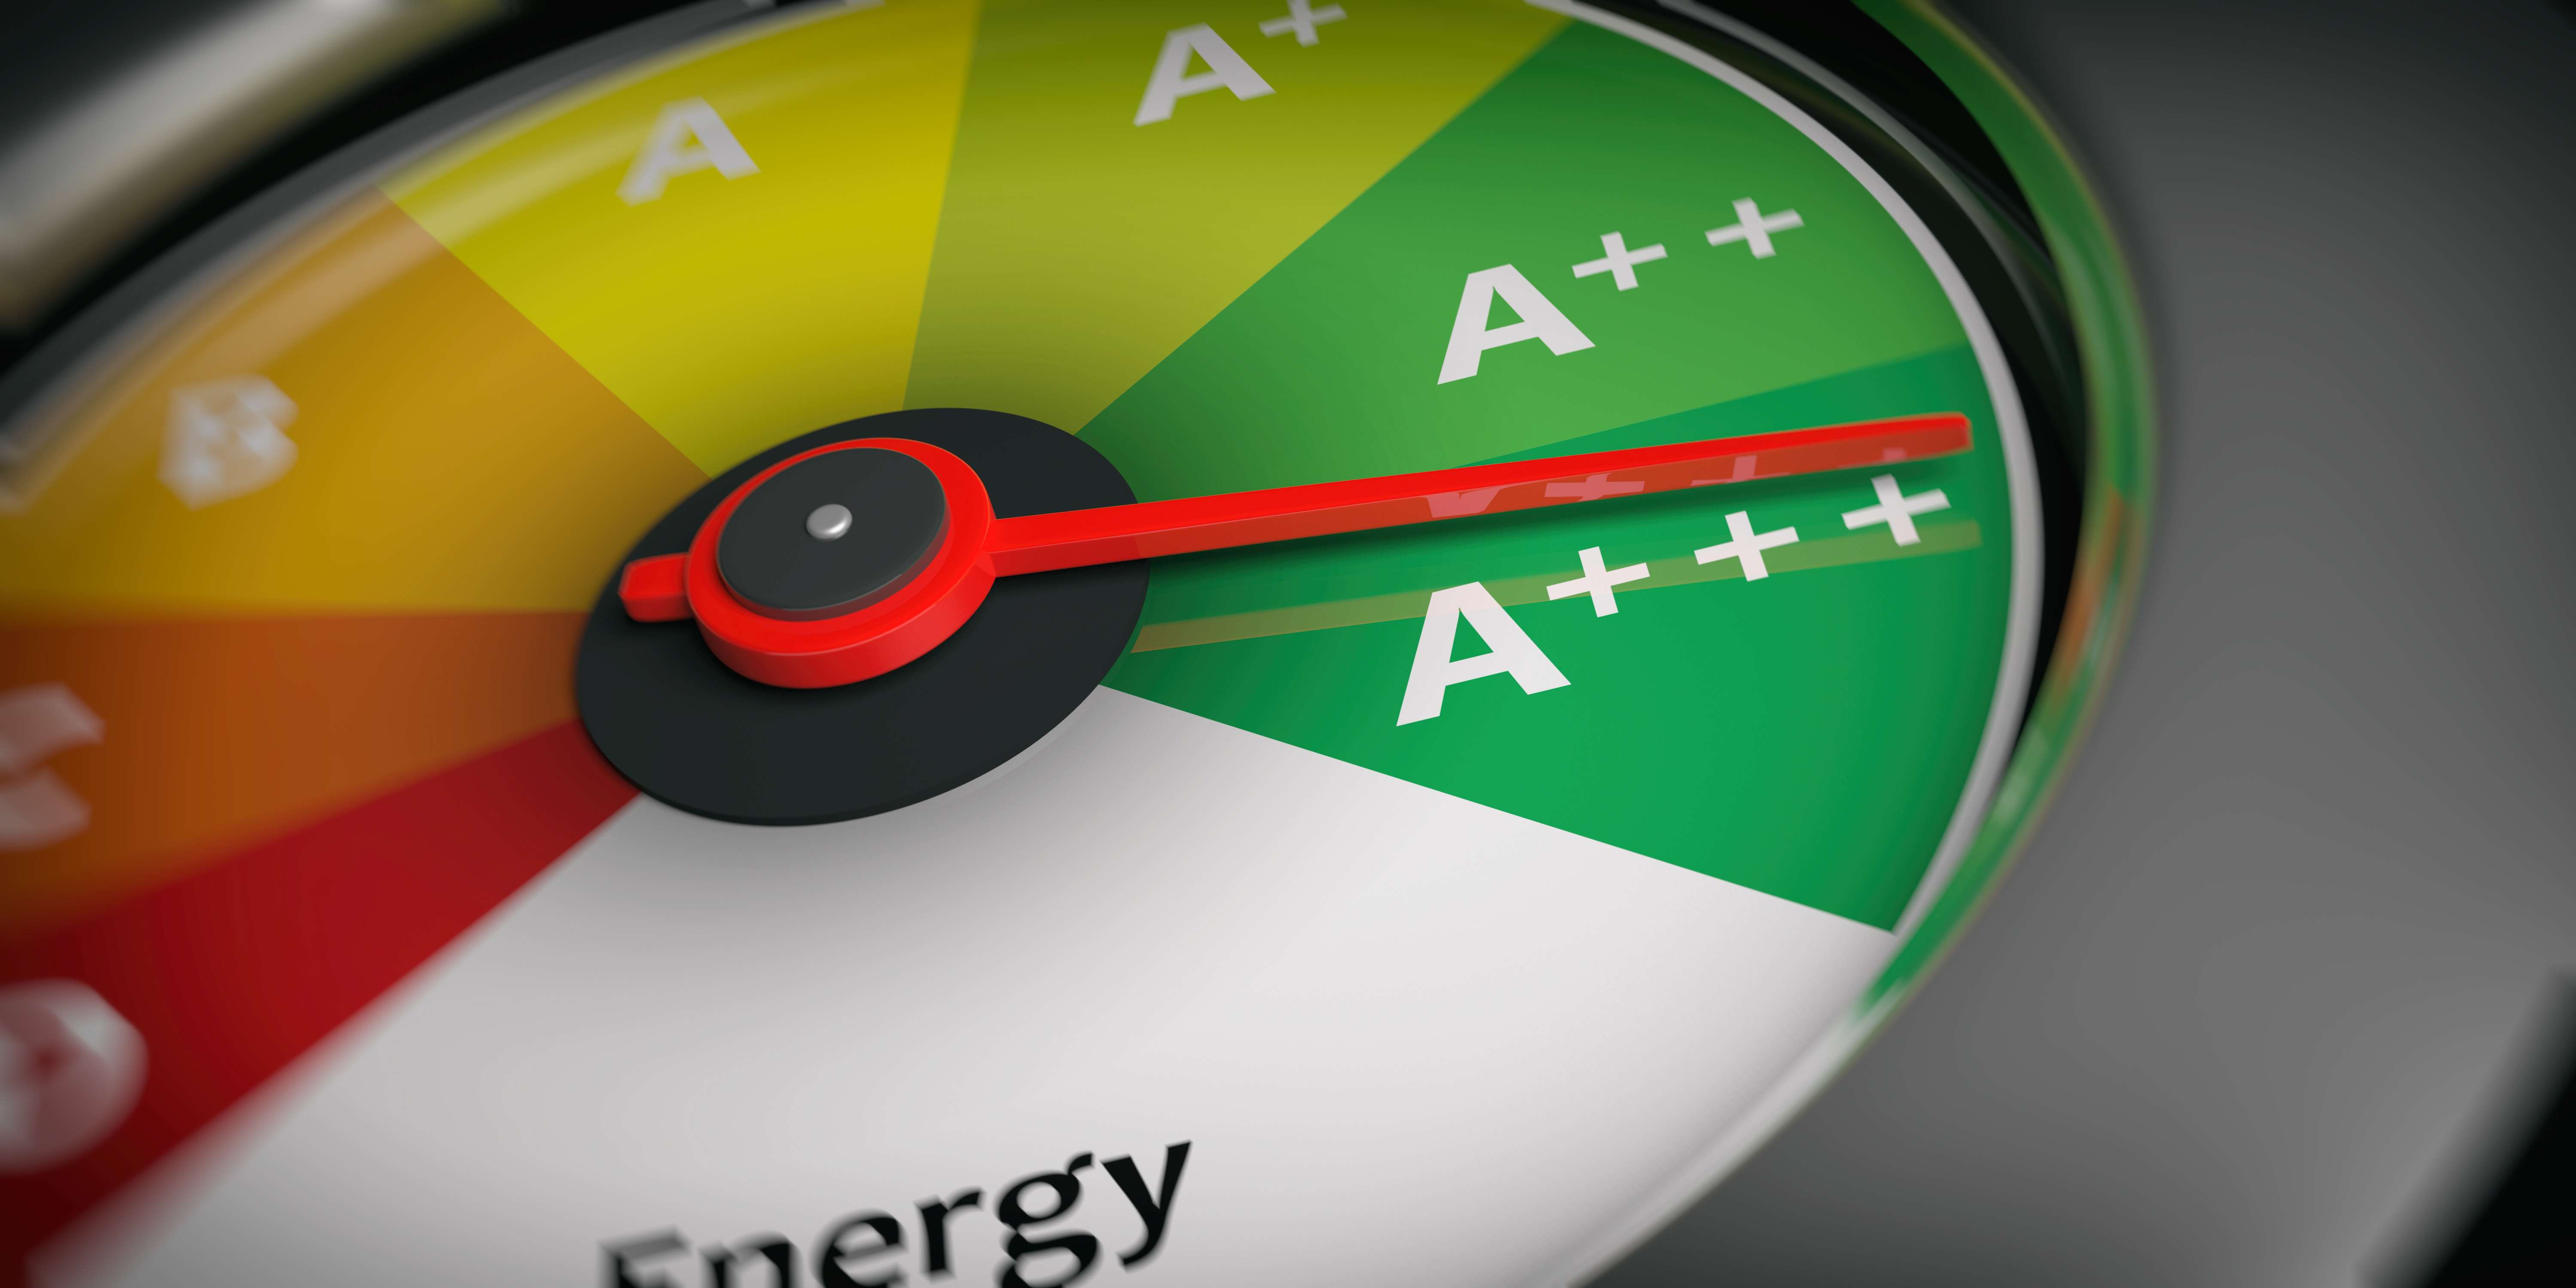 Rules for Energy efficiency comes into force for landlords in England and Wales